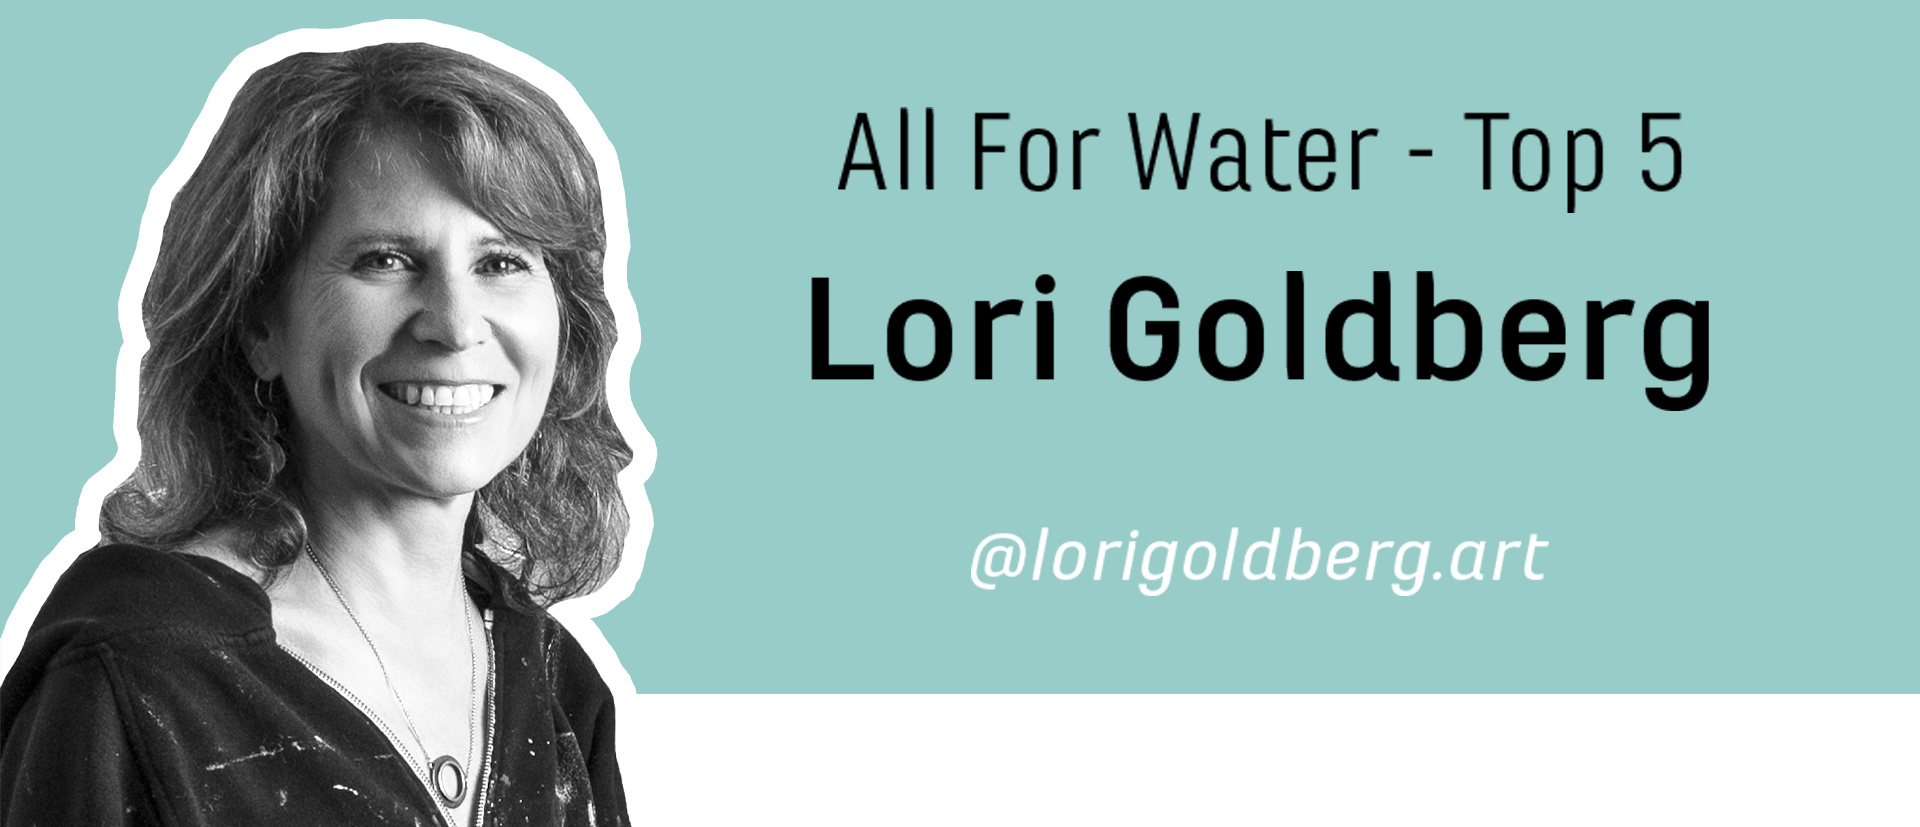 Photo of Lori Goldberg with text that reads: All For Water - Top 5, Lori Goldberg, @lorigoldberg.art